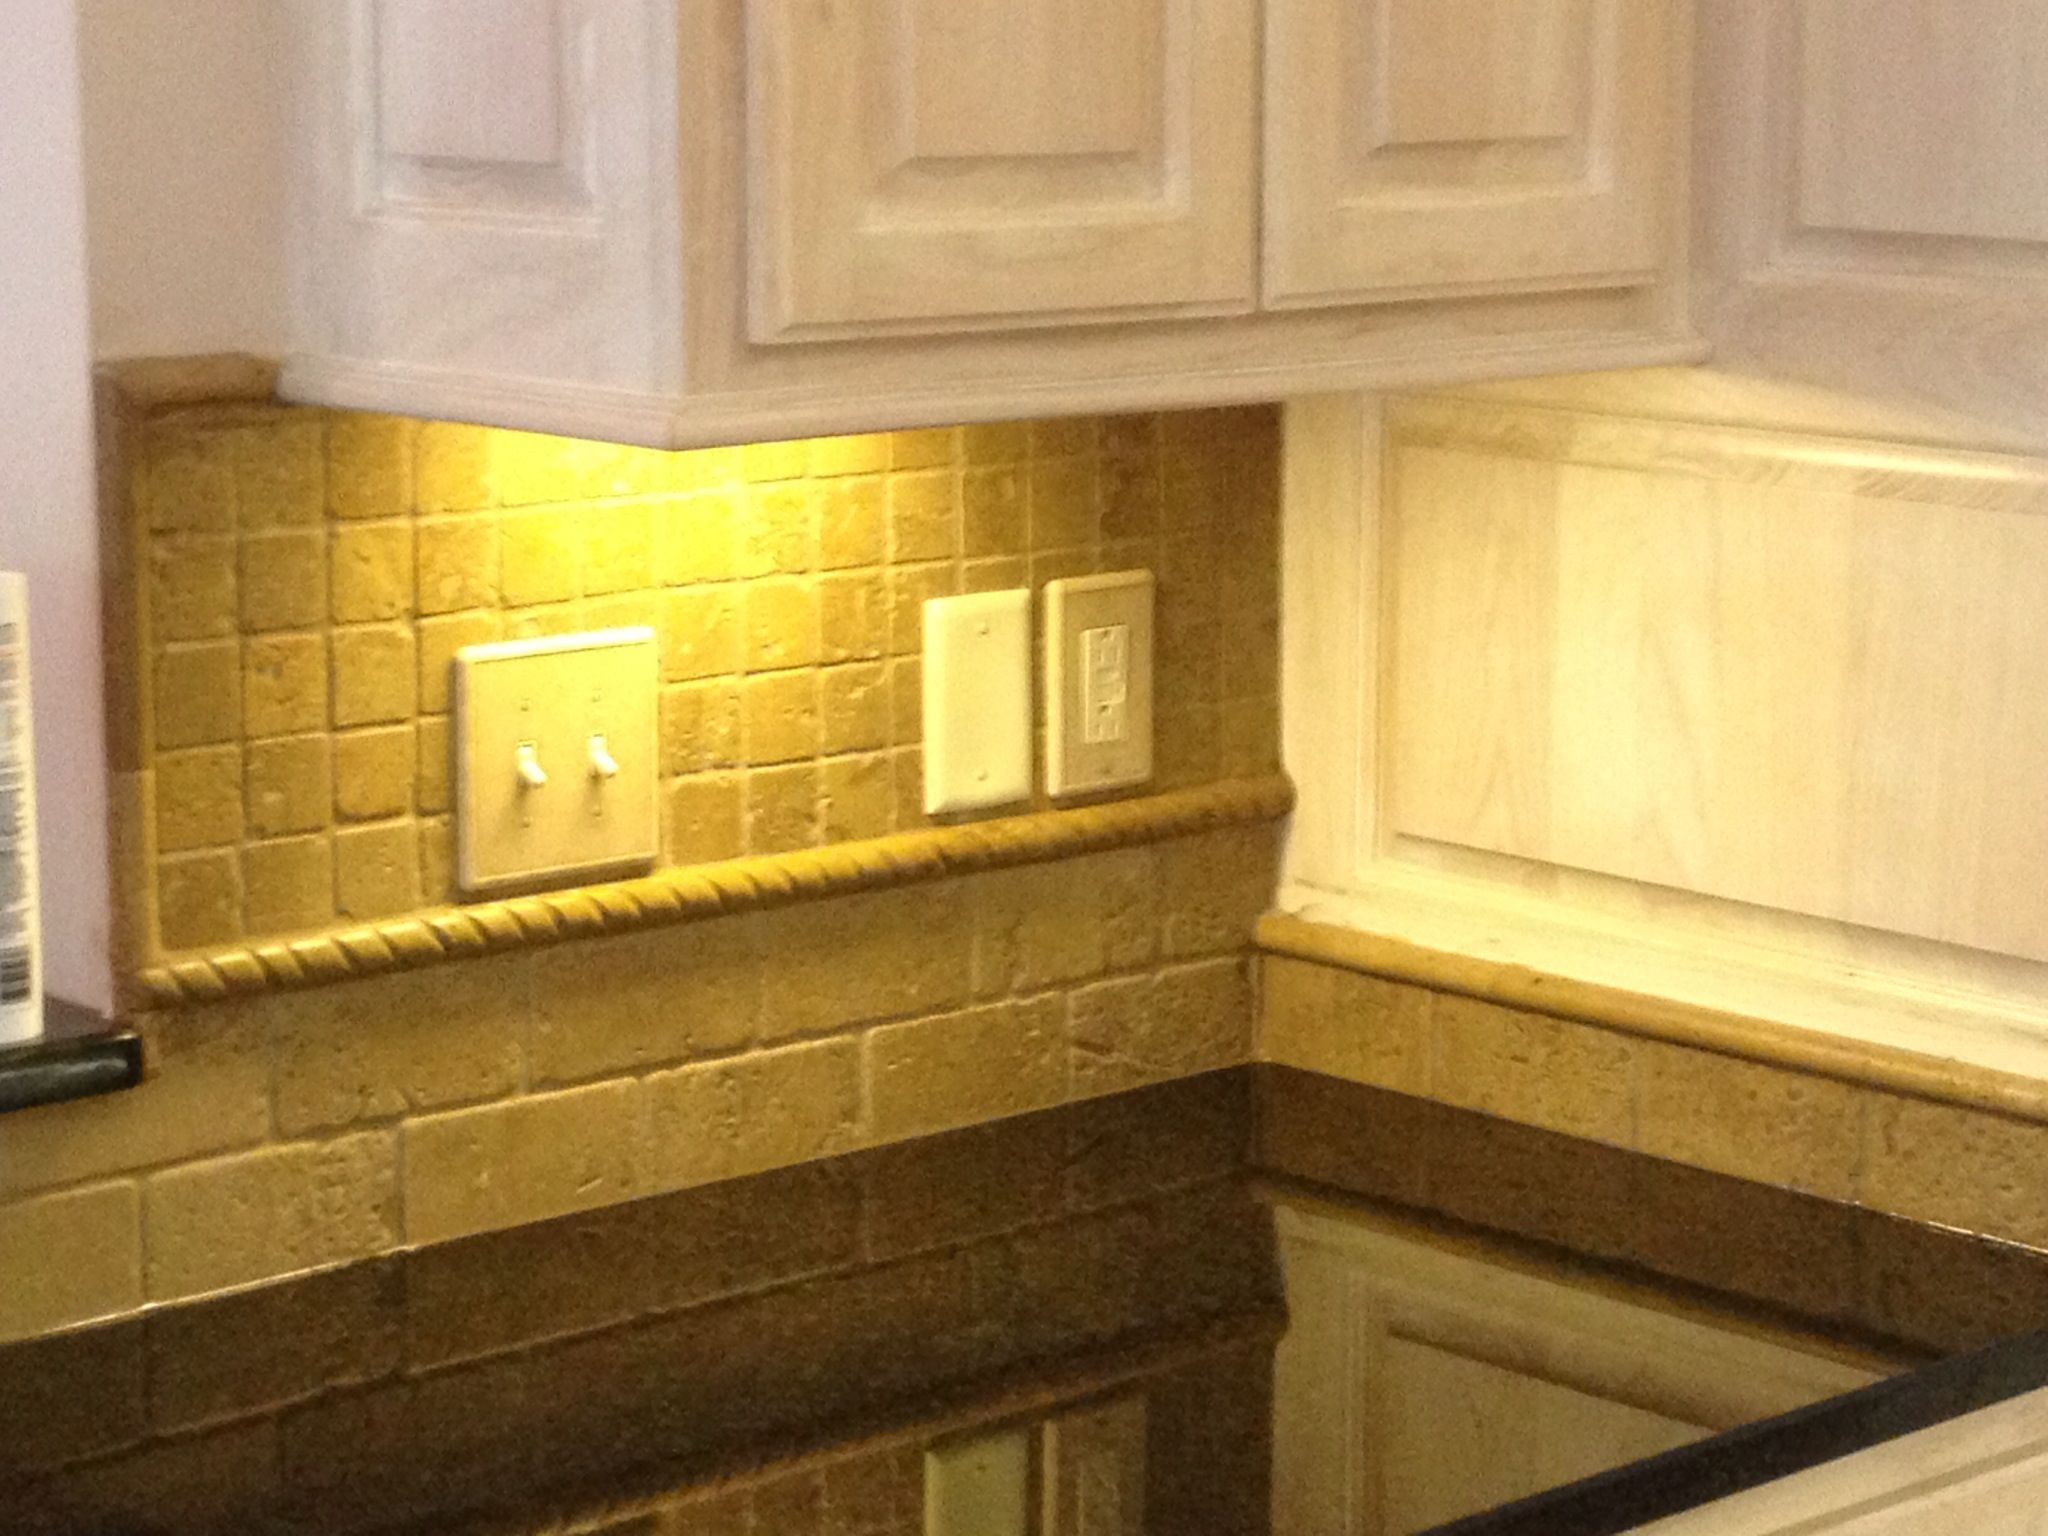 Tumbled travertine backsplash ideas kitchen travertine for Bathroom backsplash ideas